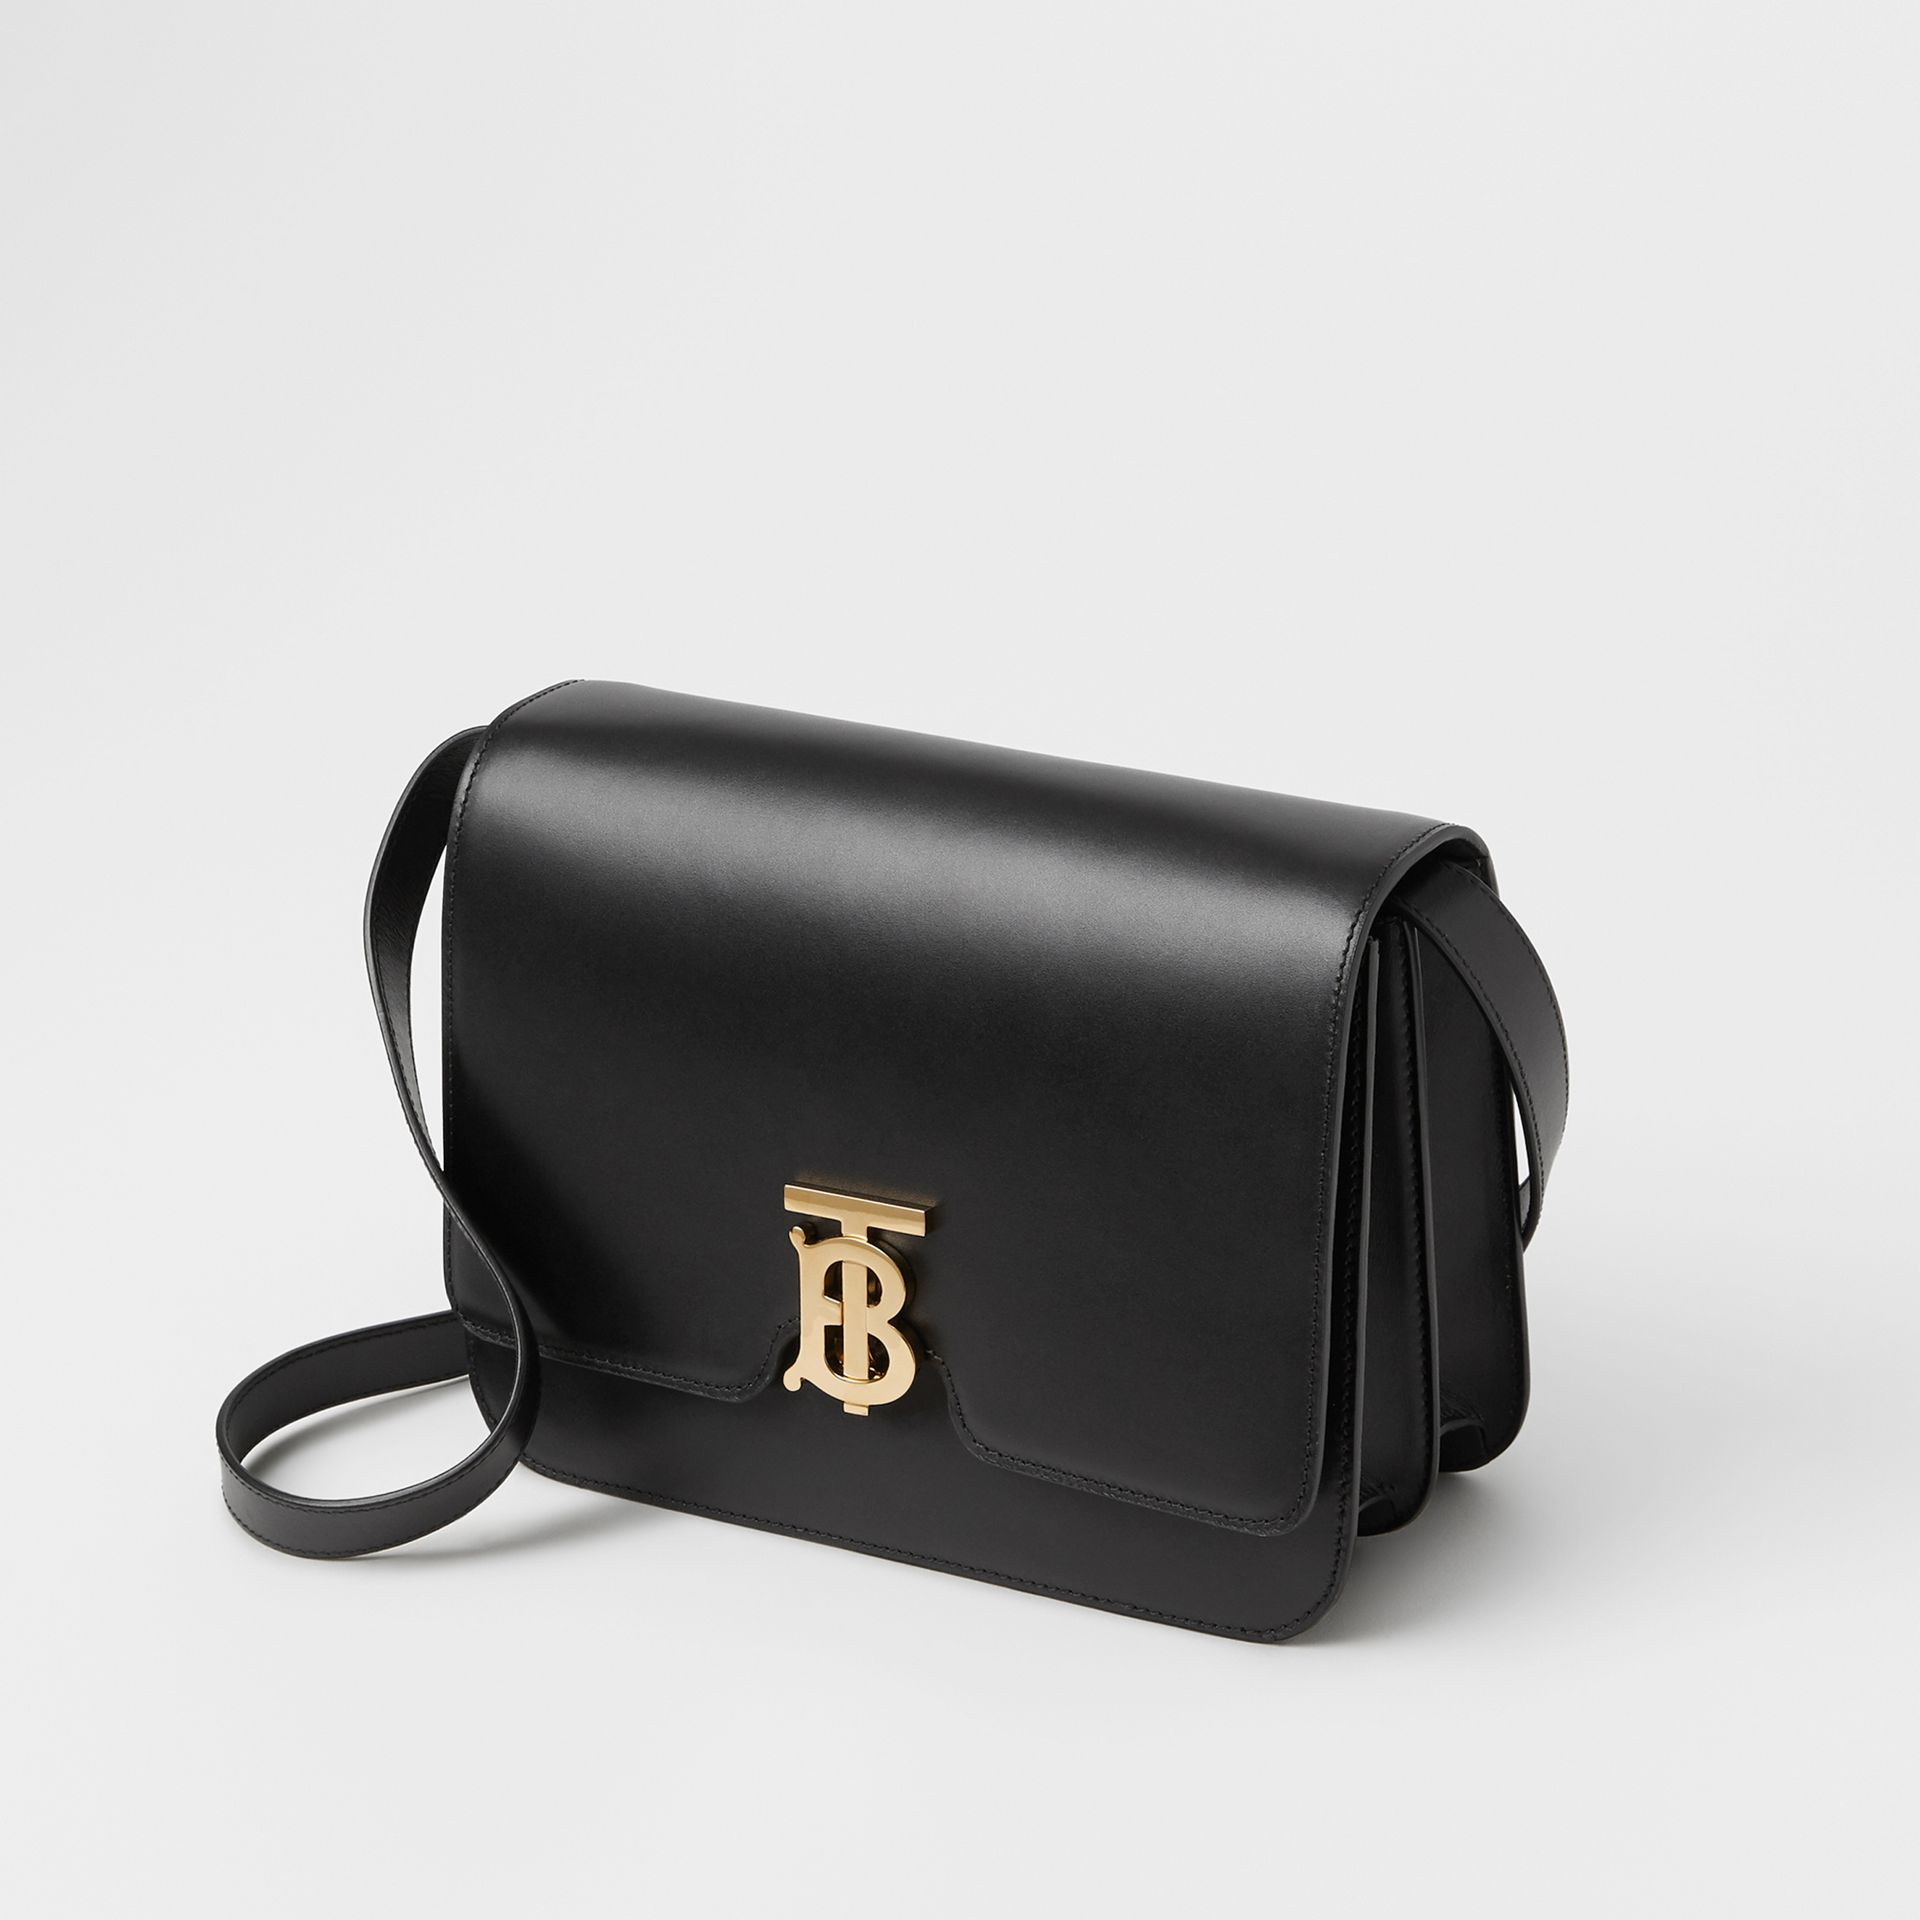 Medium Leather TB Bag in Black - Women | Burberry United Kingdom - gallery image 4